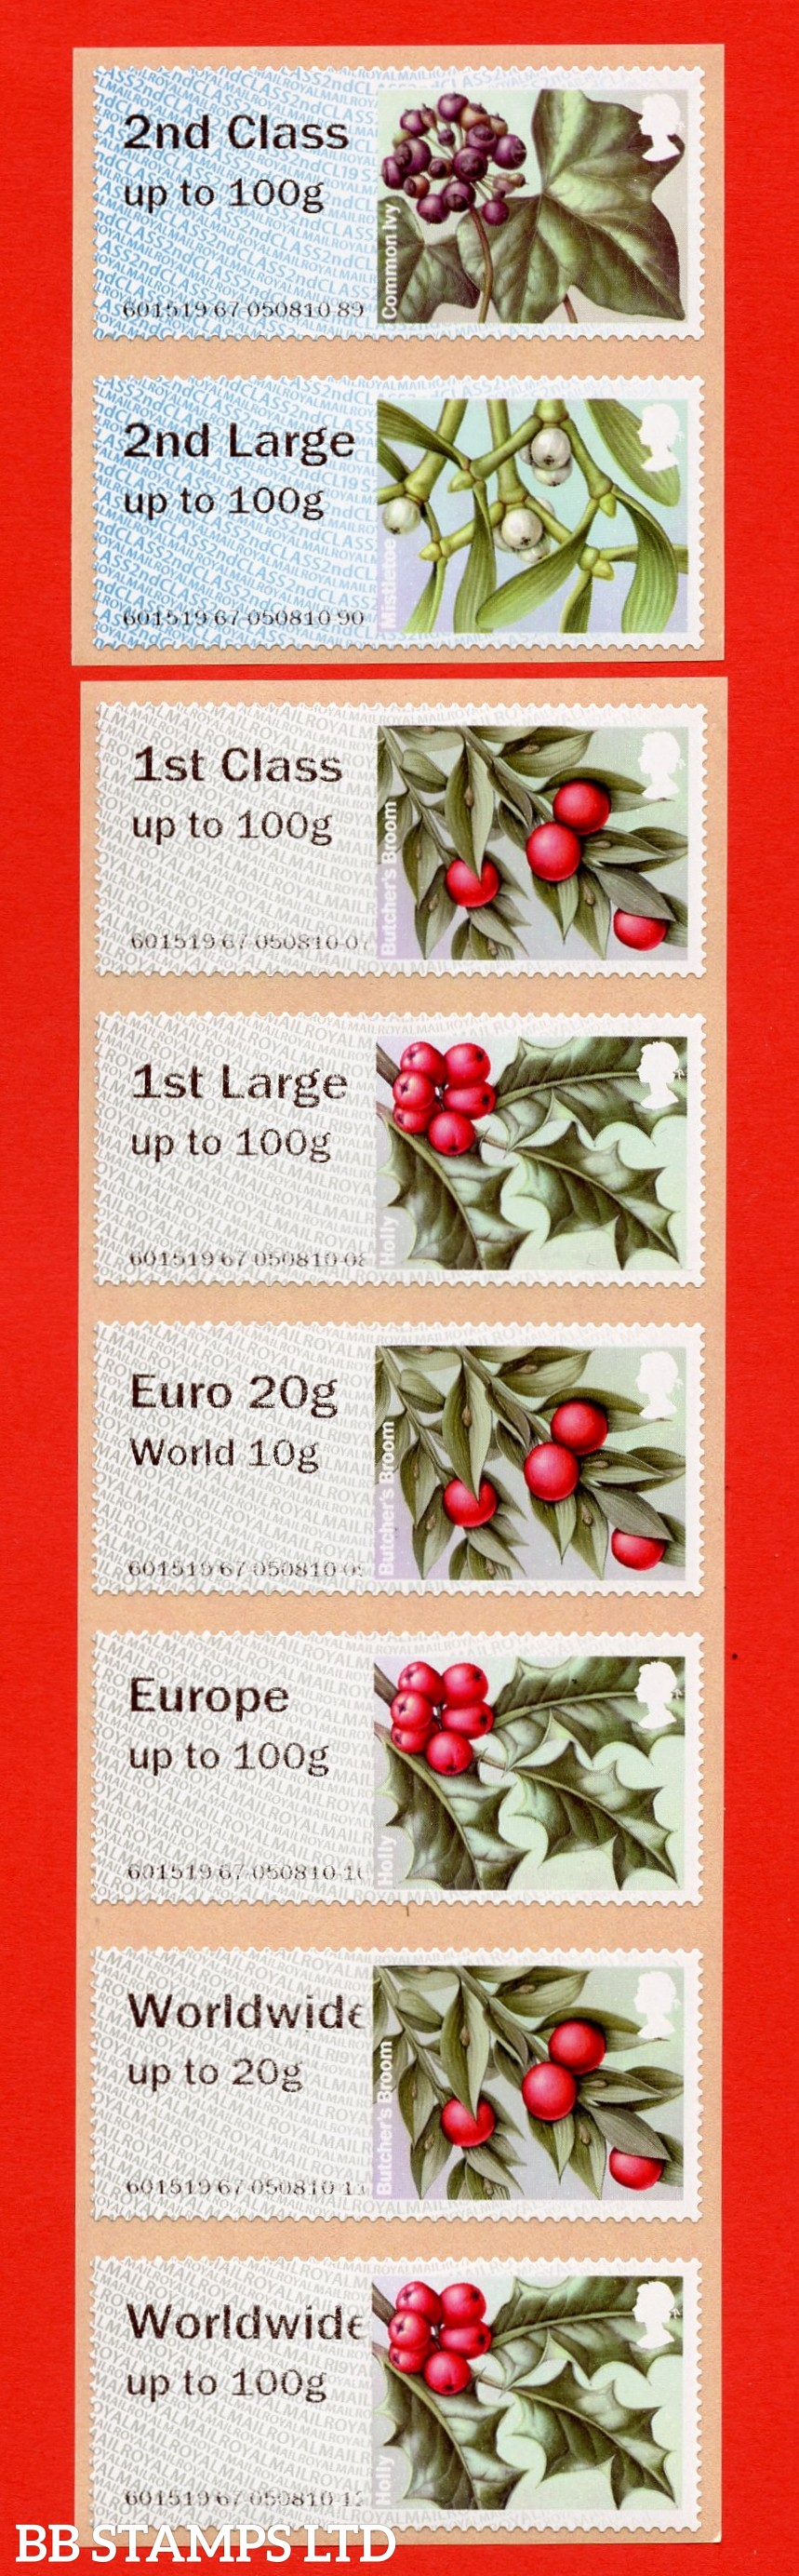 2017 Winter Greenery 2019 issue (2ndCLASS in background/greenish grey) 2nd - W/Wide 100g: set of 8, designs may vary, Type IIA, CL19/R19Y, (BK29,P5)